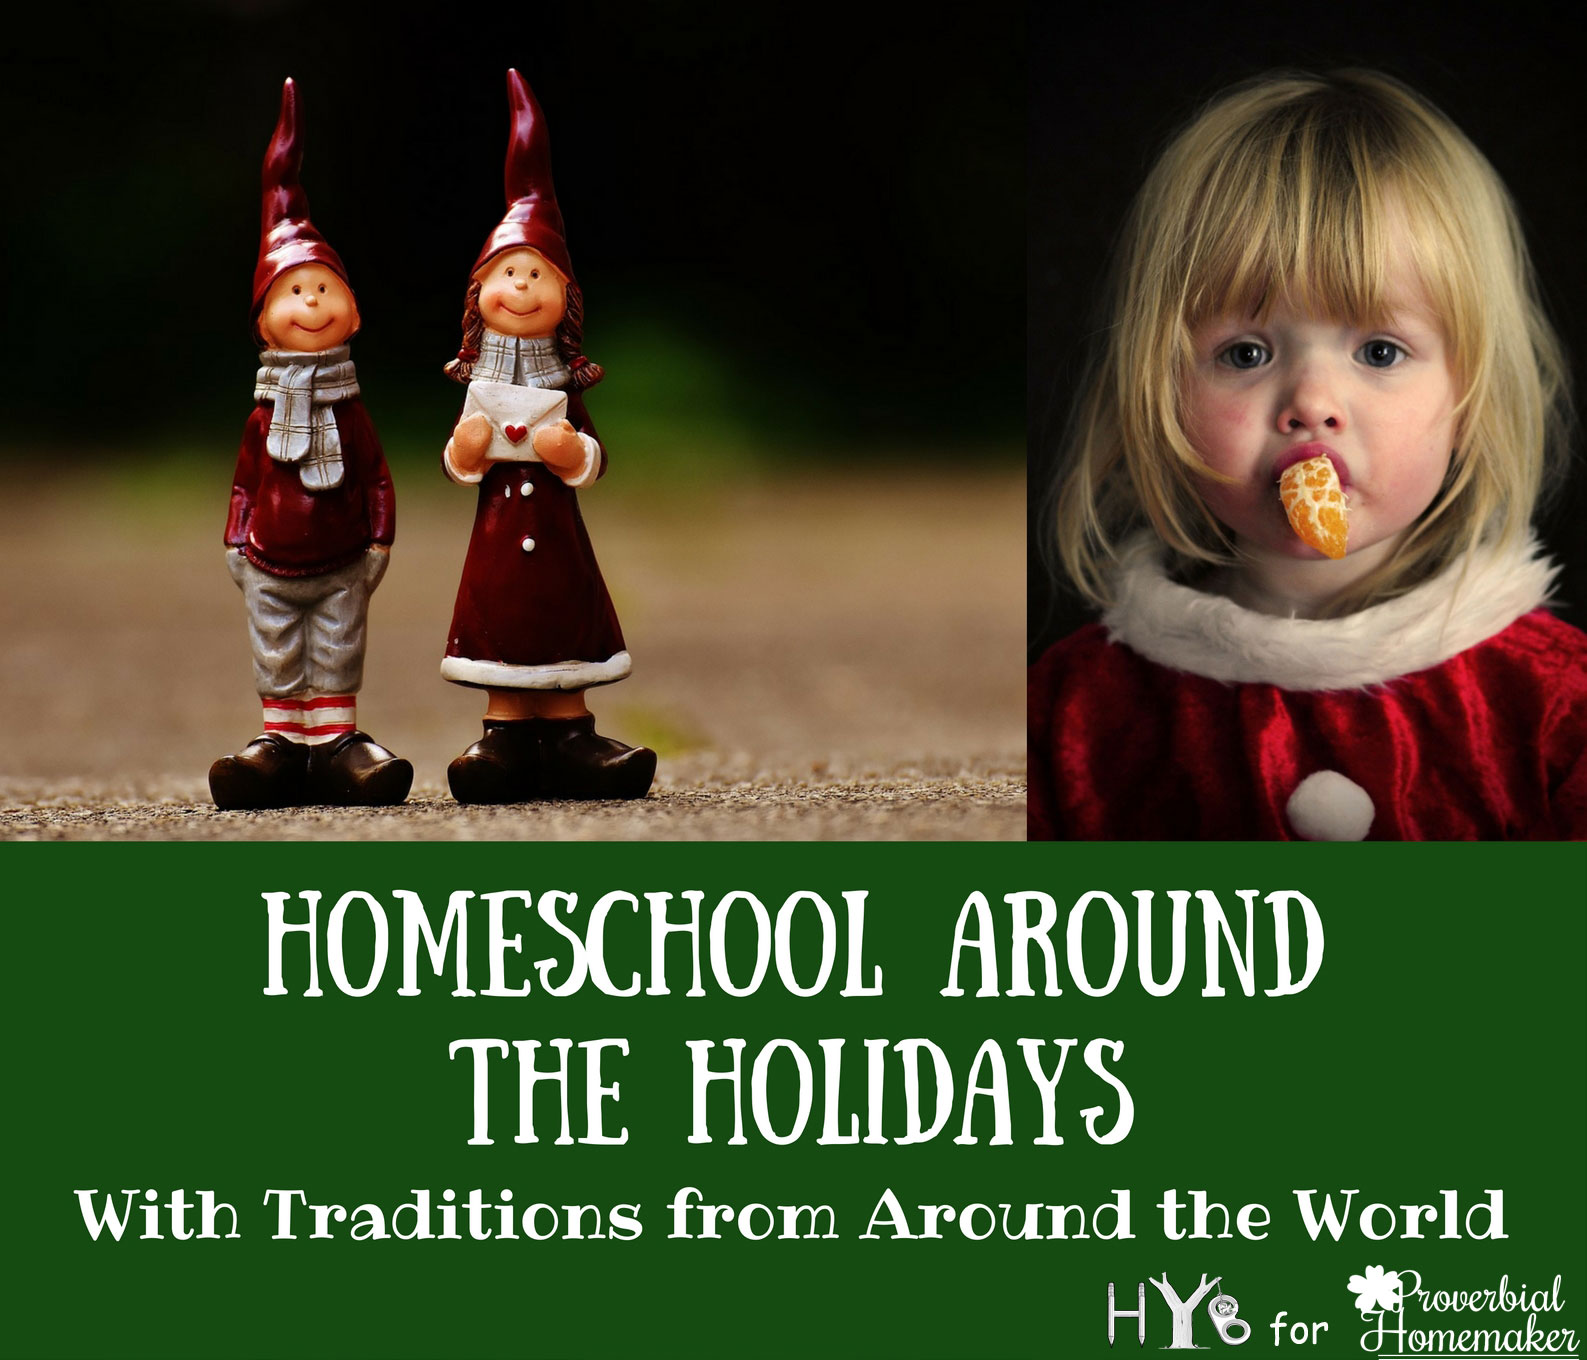 Homeschool Around the Holidays